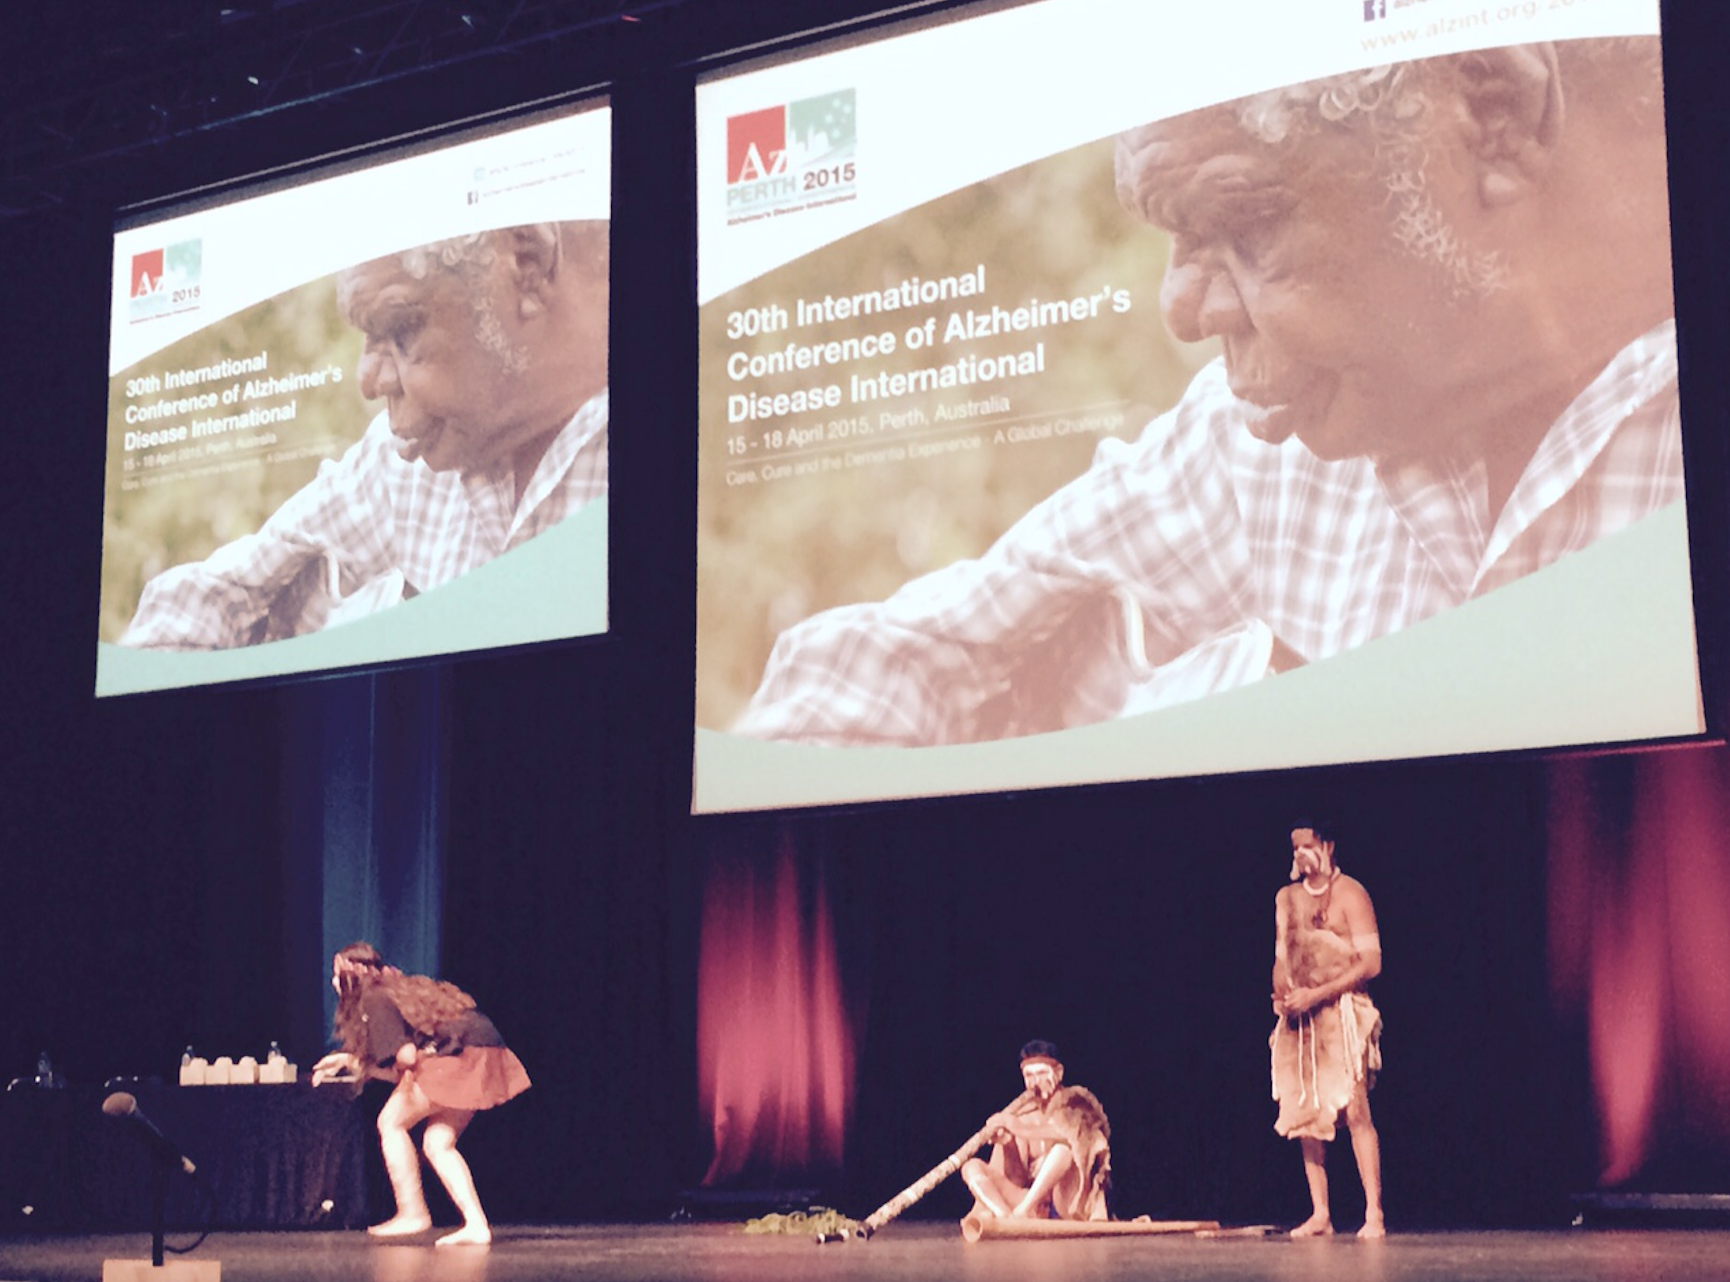 Opening of ADI2015 Image source: Kate Swaffer